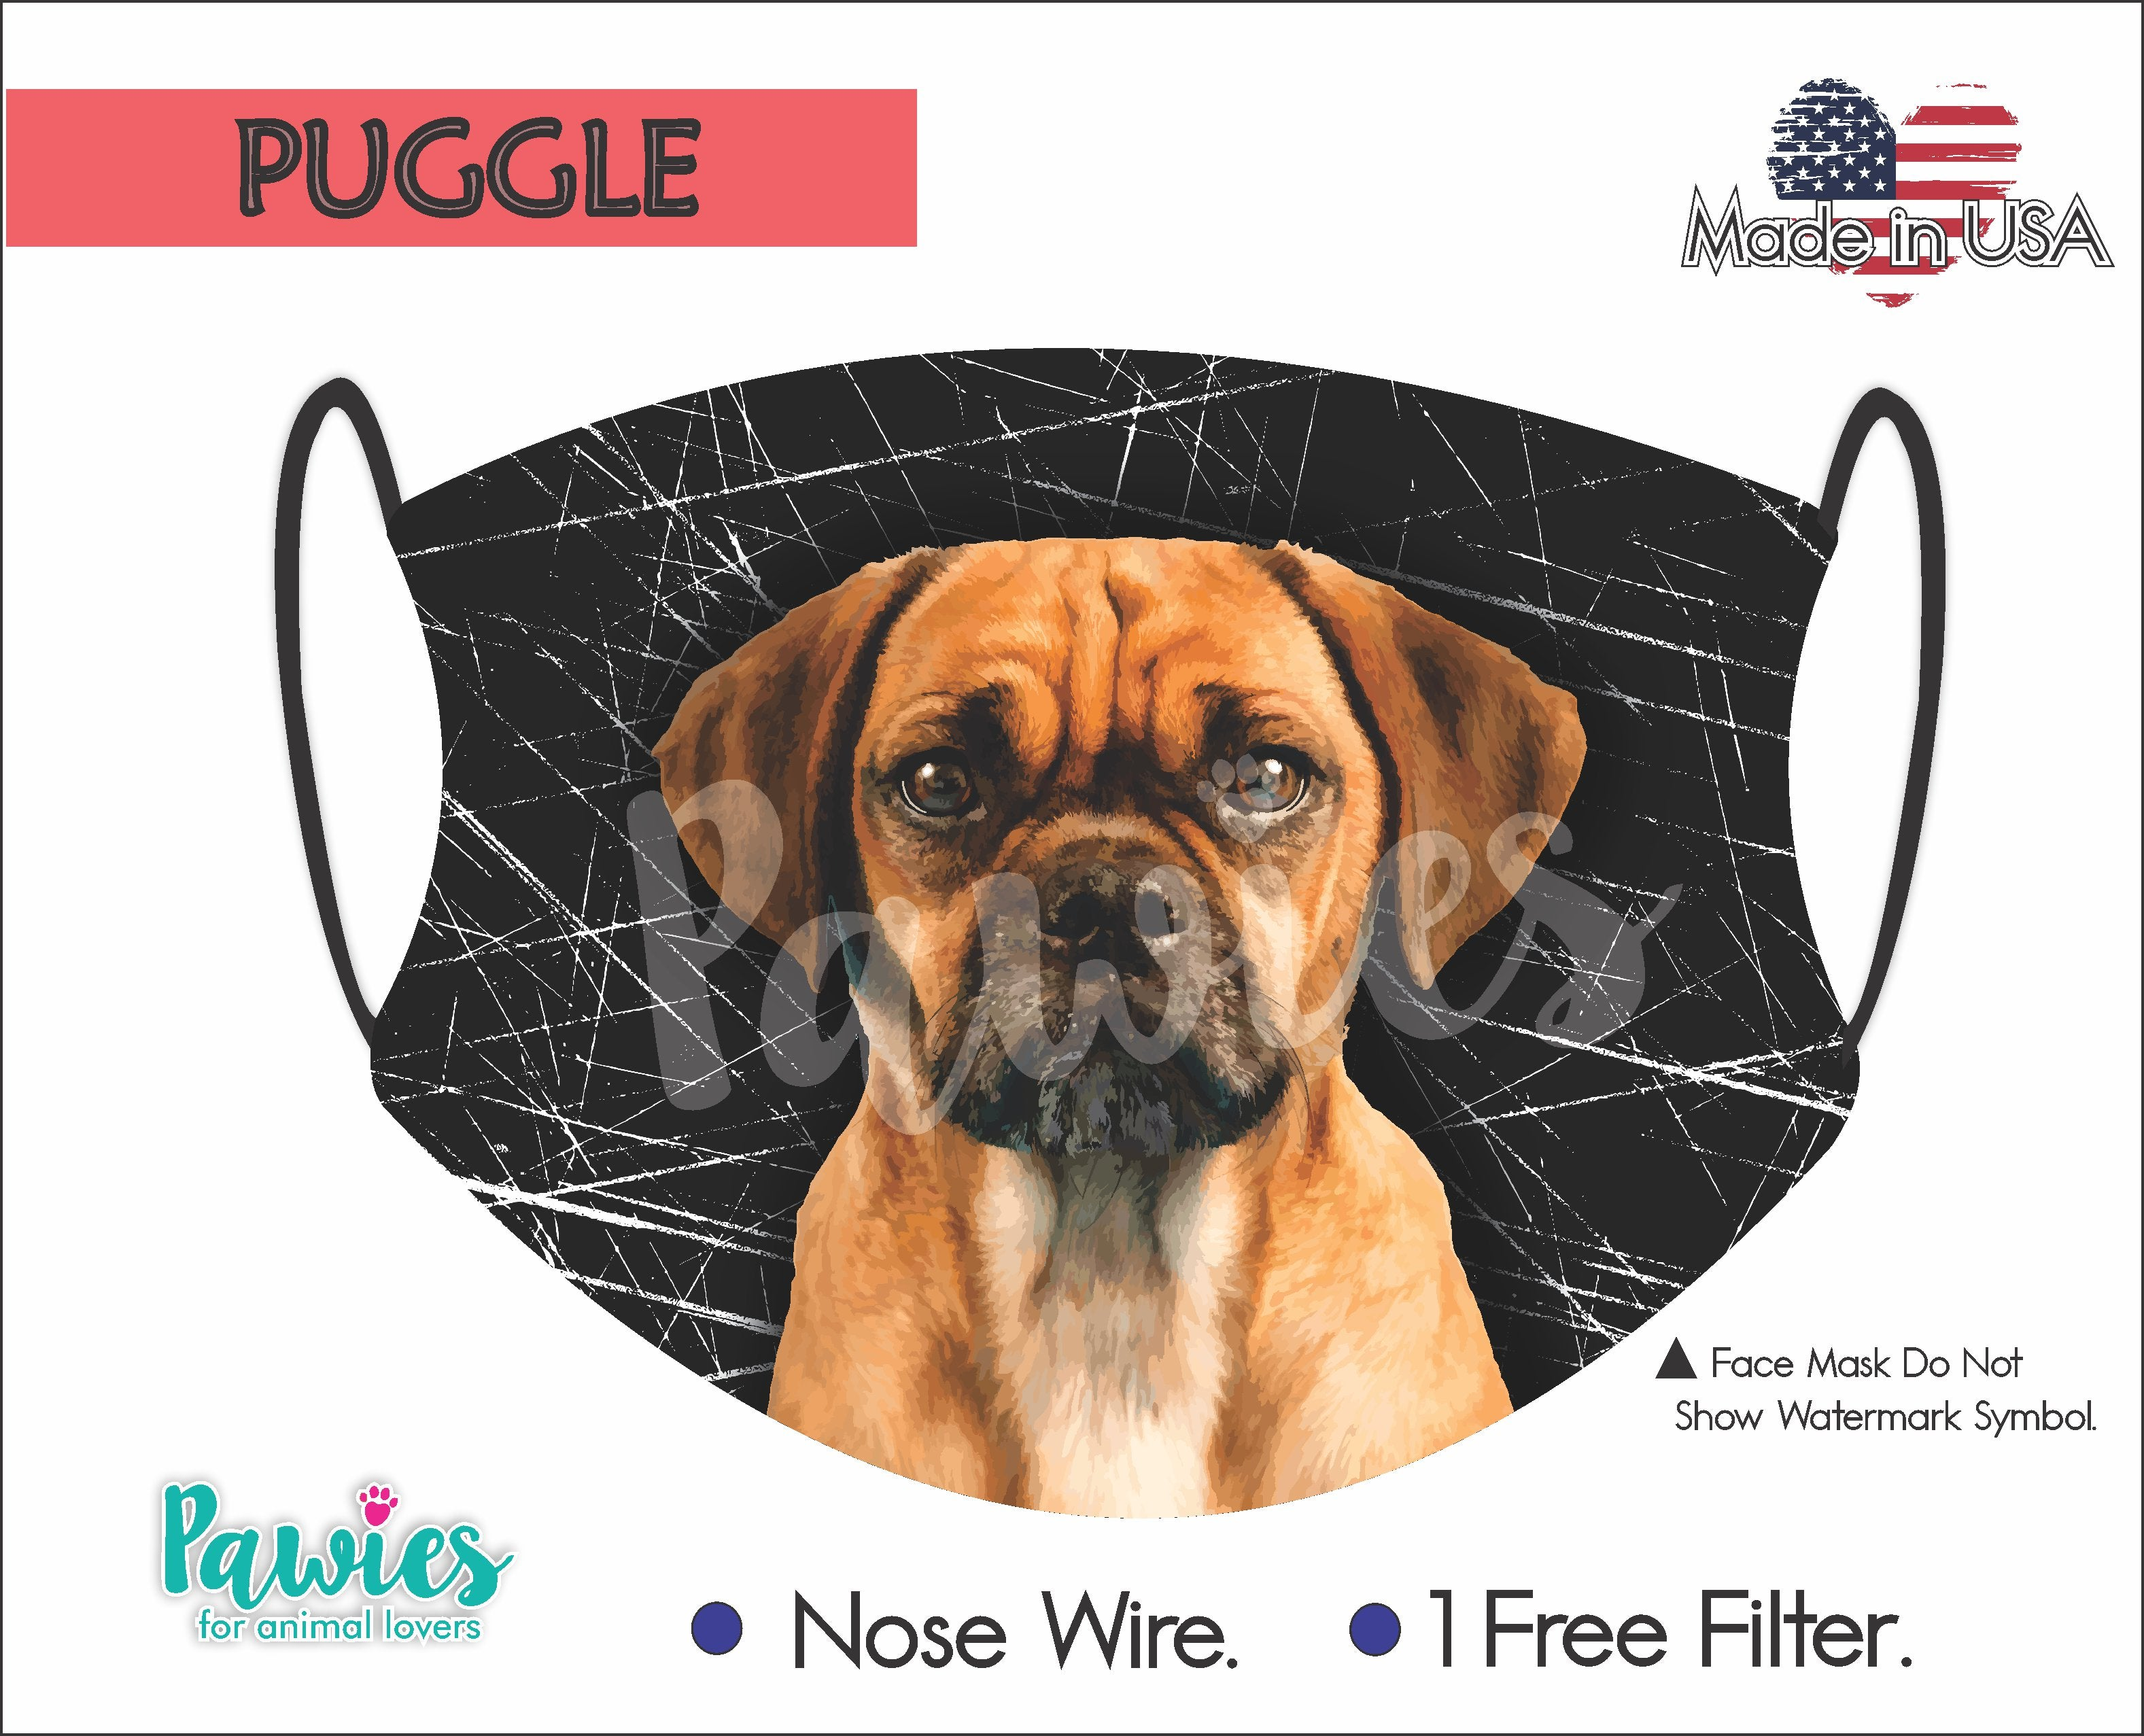 Puggle Face Mask